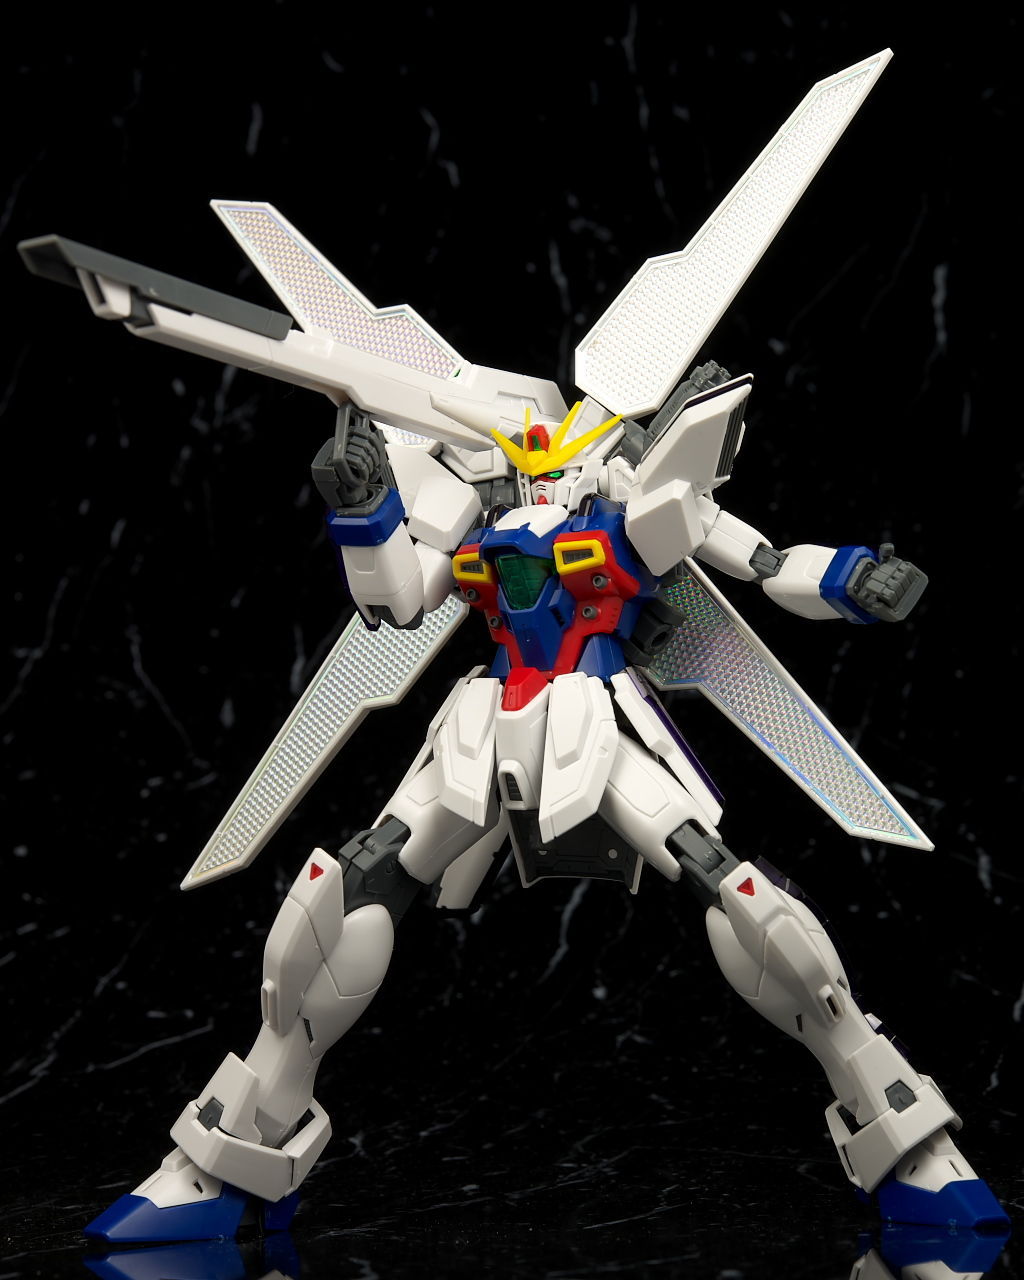 MG 1100 GX 9900 Gundam X Full Kit Photoreview No40 Wallpaper Size 1024x1280